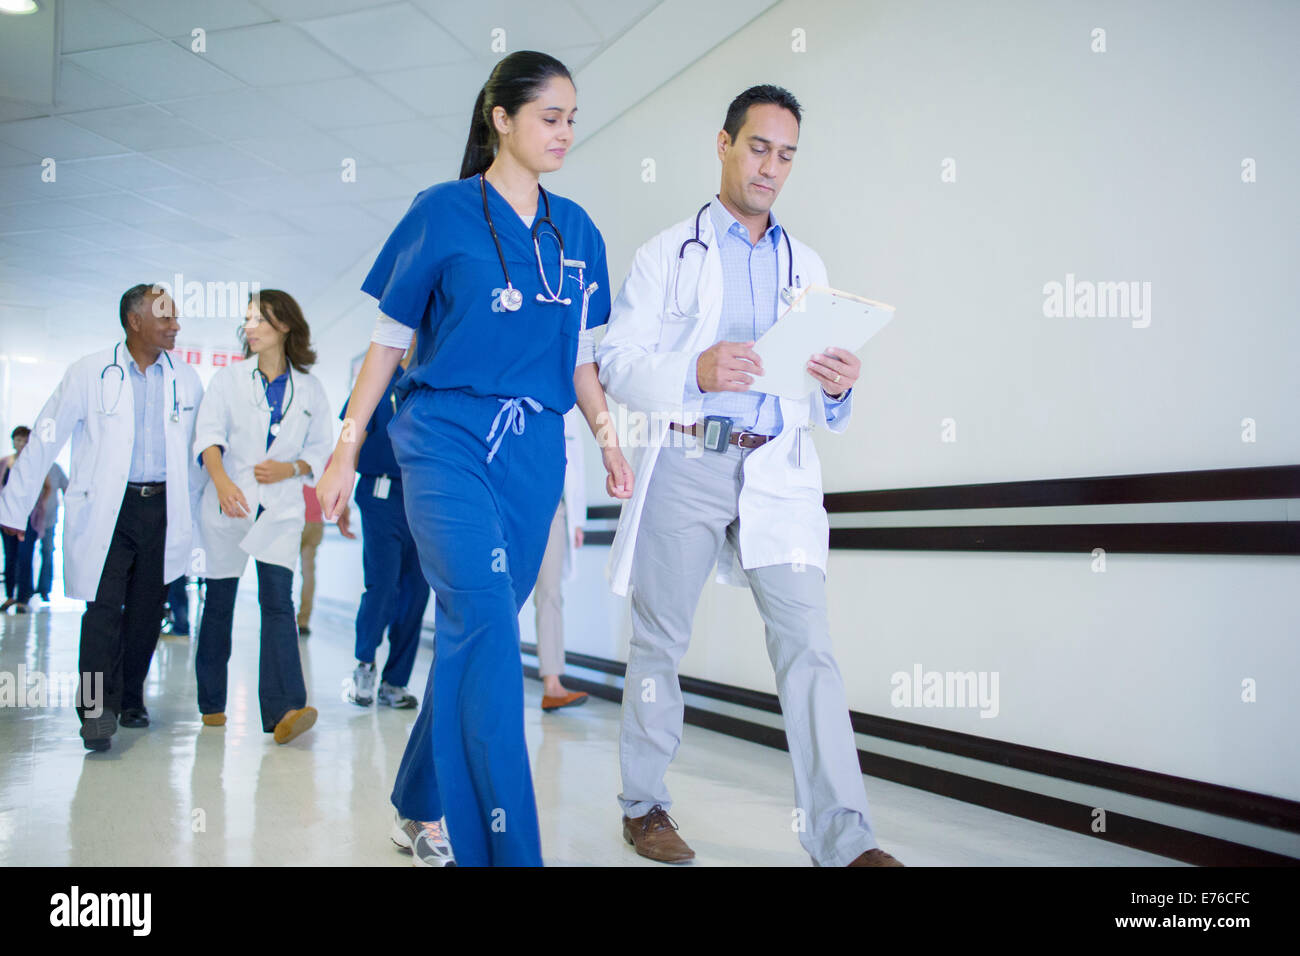 Doctor and nurse reading medical chart in hospital - Stock Image